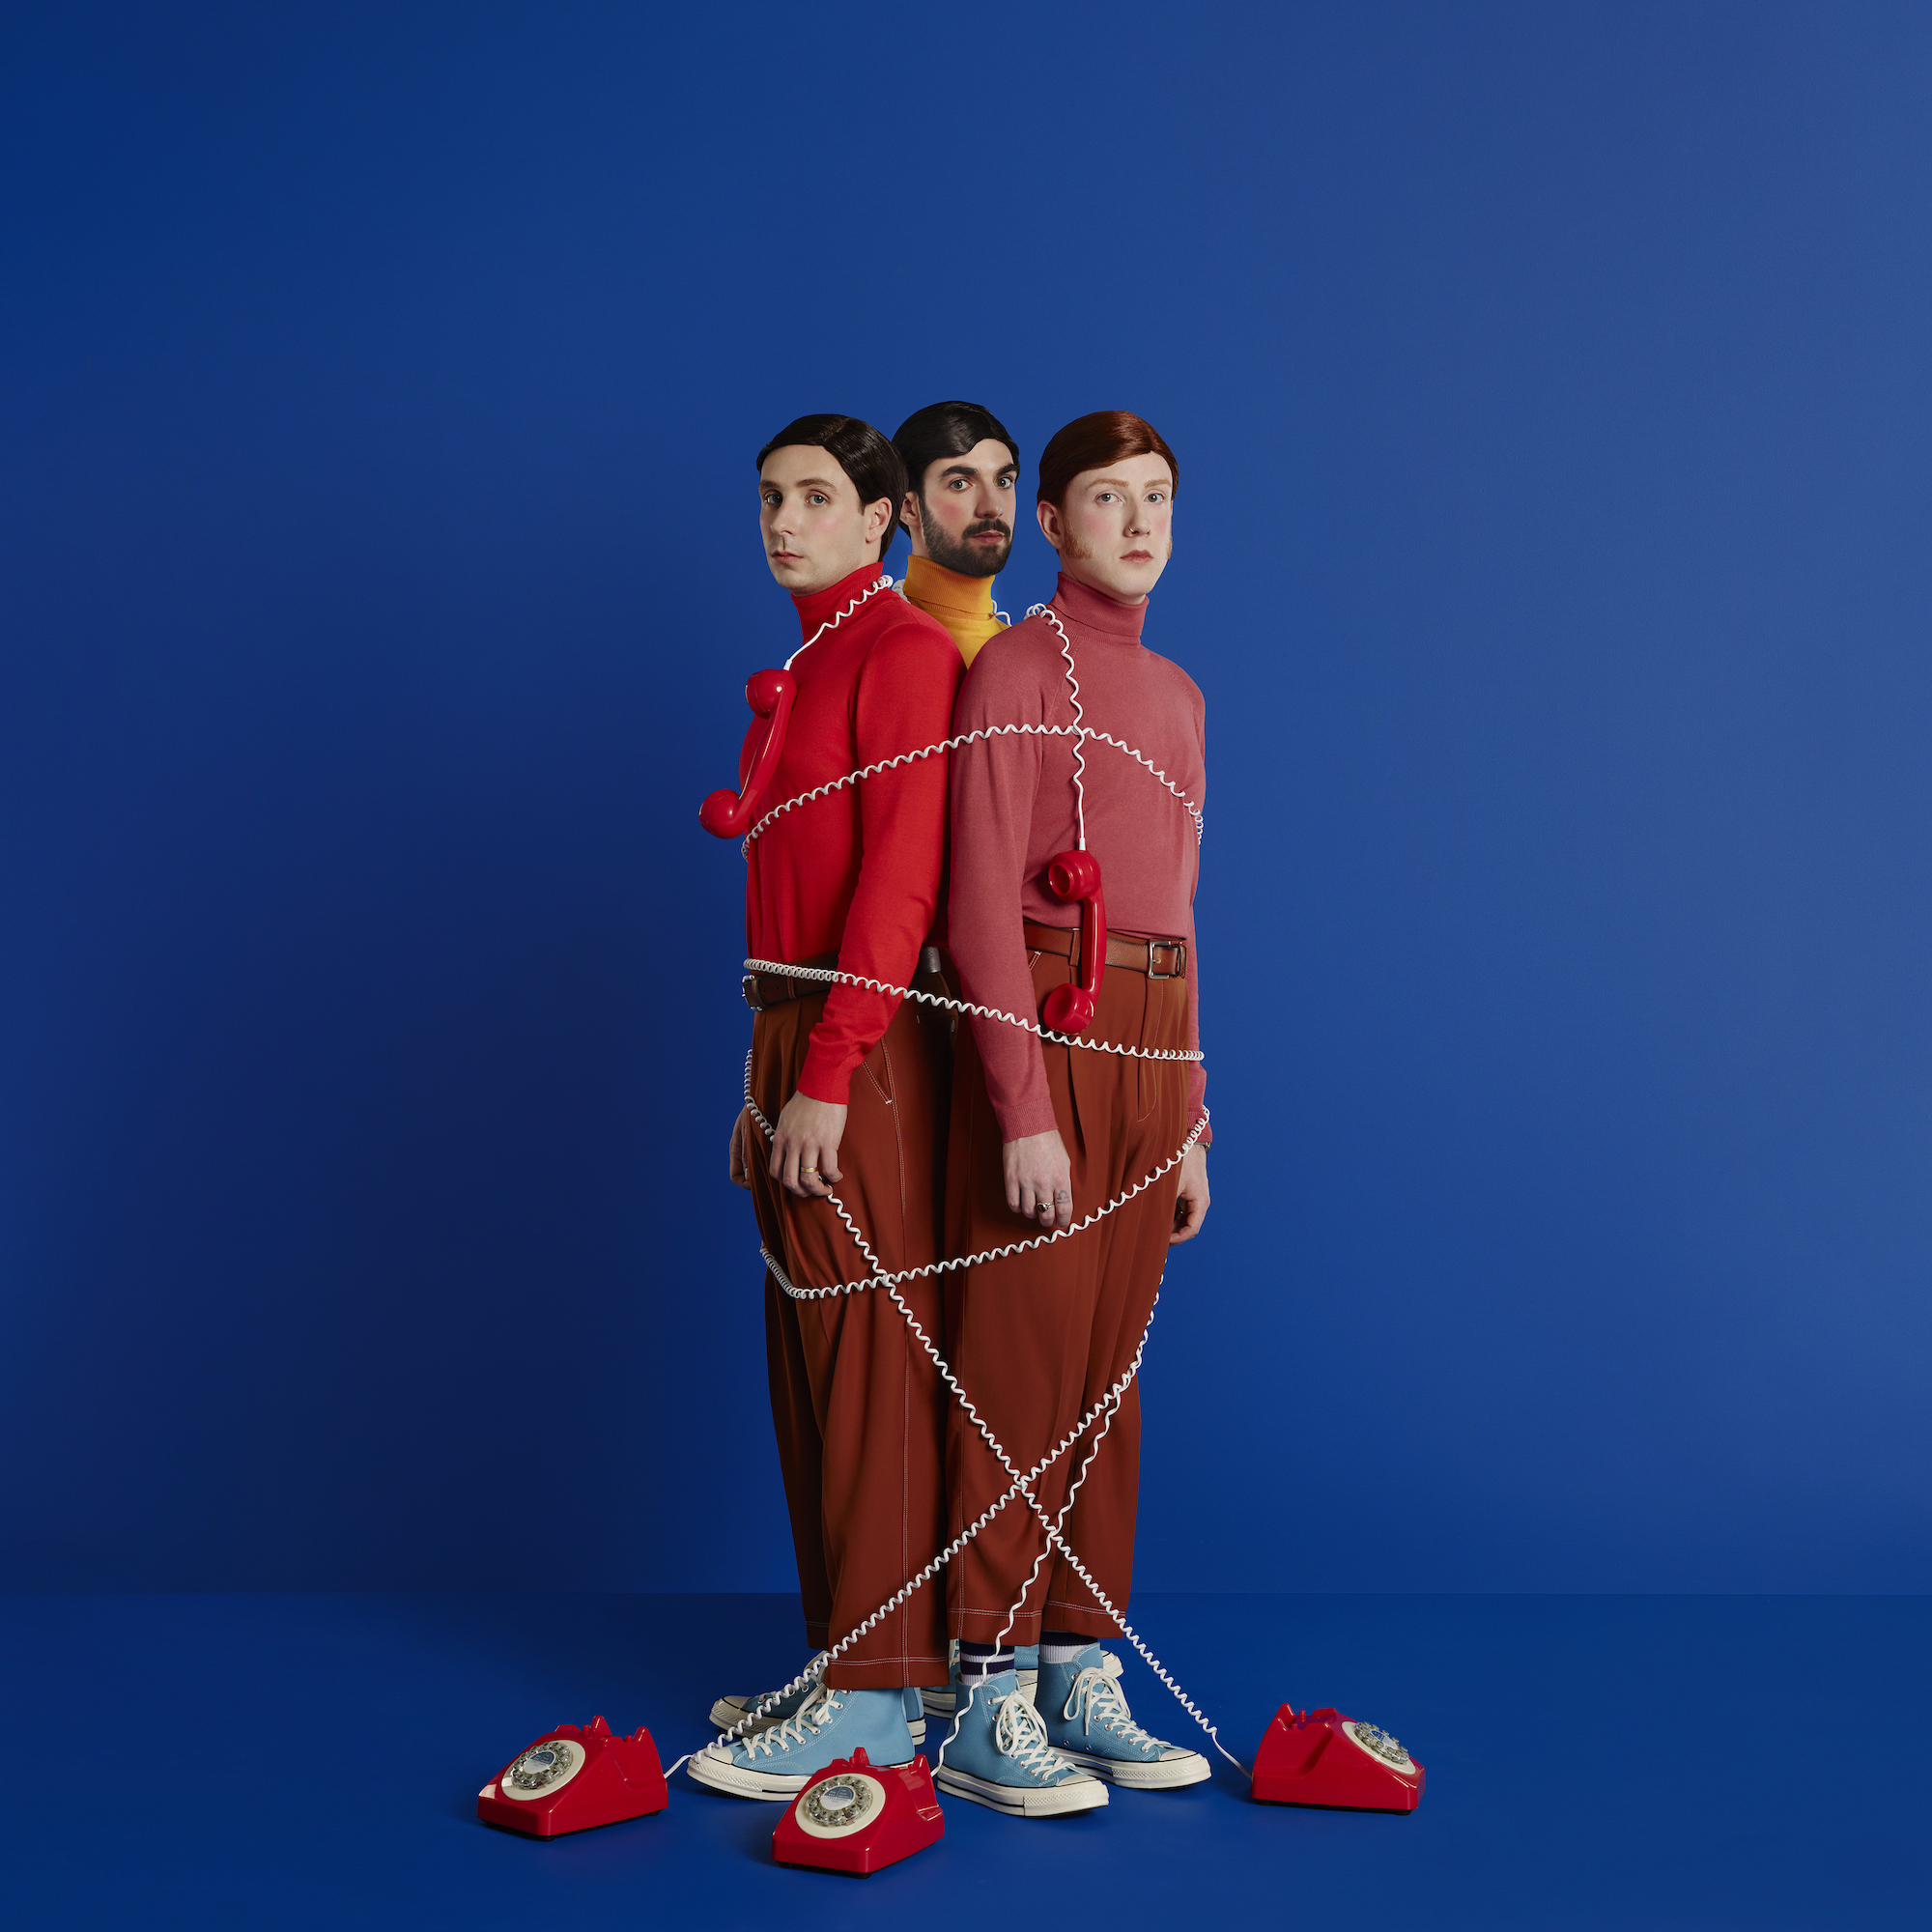 Two Door Cinema Club press image tied up